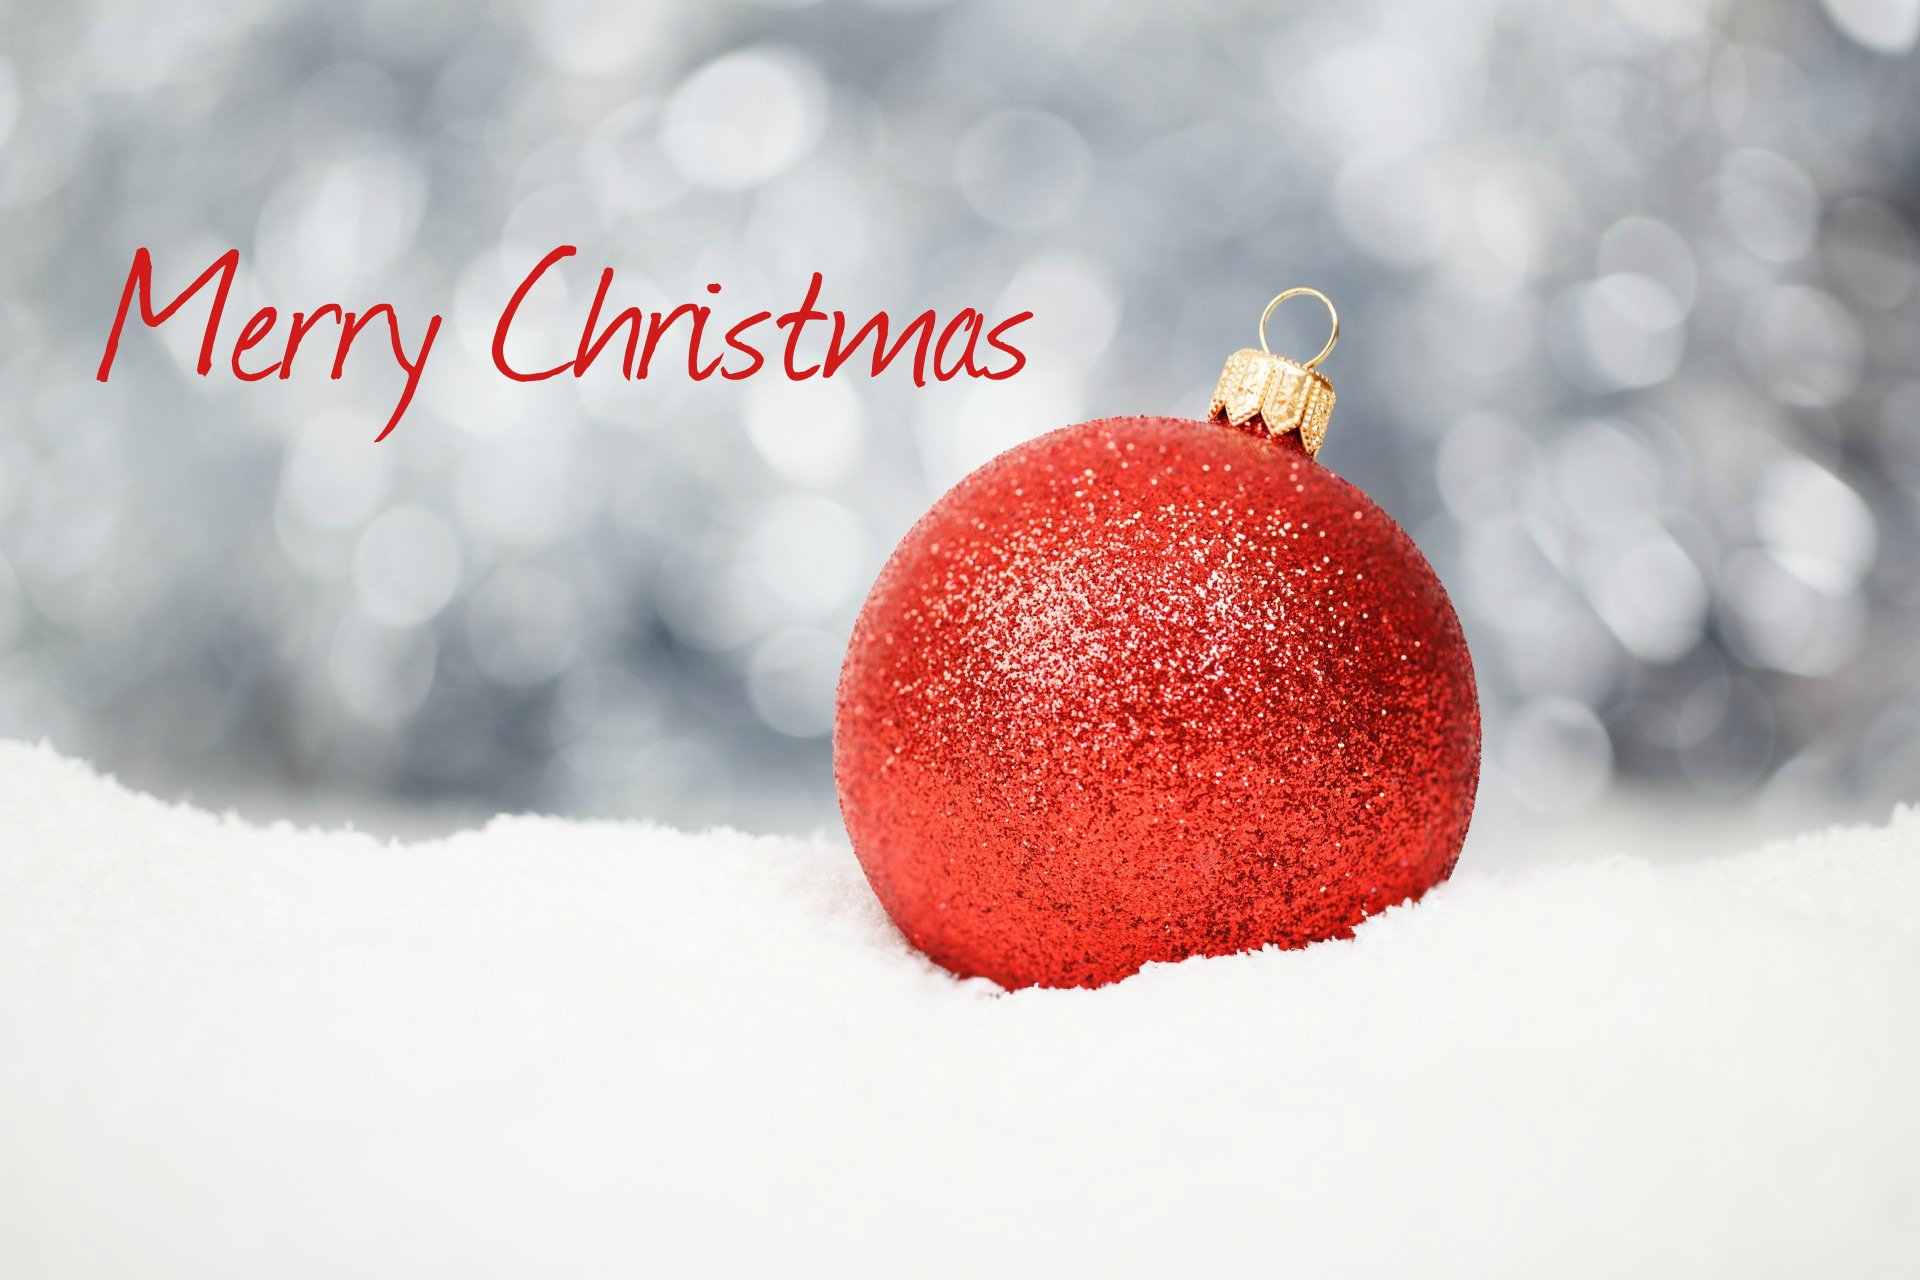 Holiday - Christmas  Merry Christmas Bauble Christmas Ornaments Bokeh Red White Wallpaper